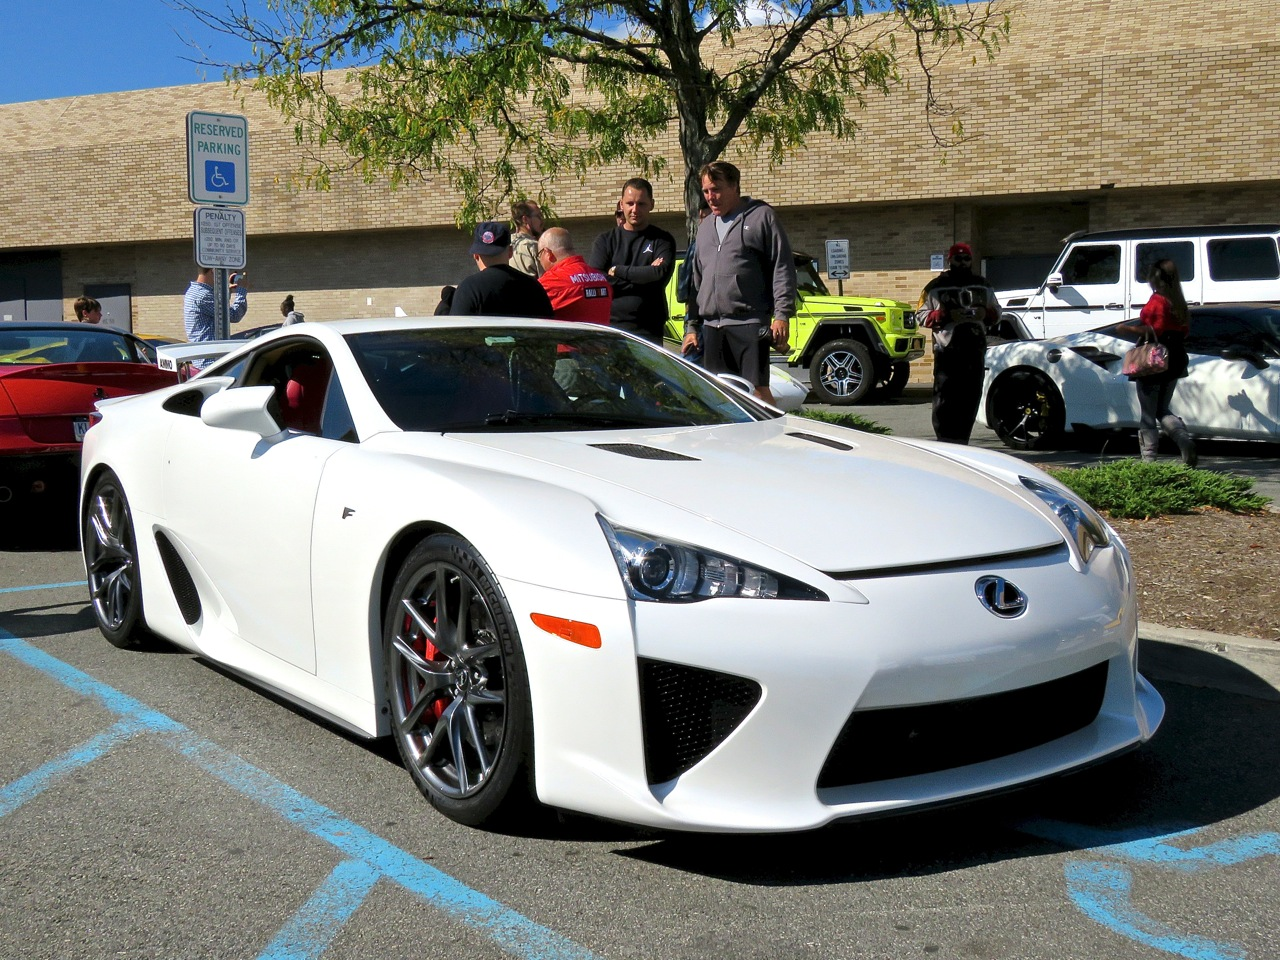 Lexus LFA Cars and Caffe